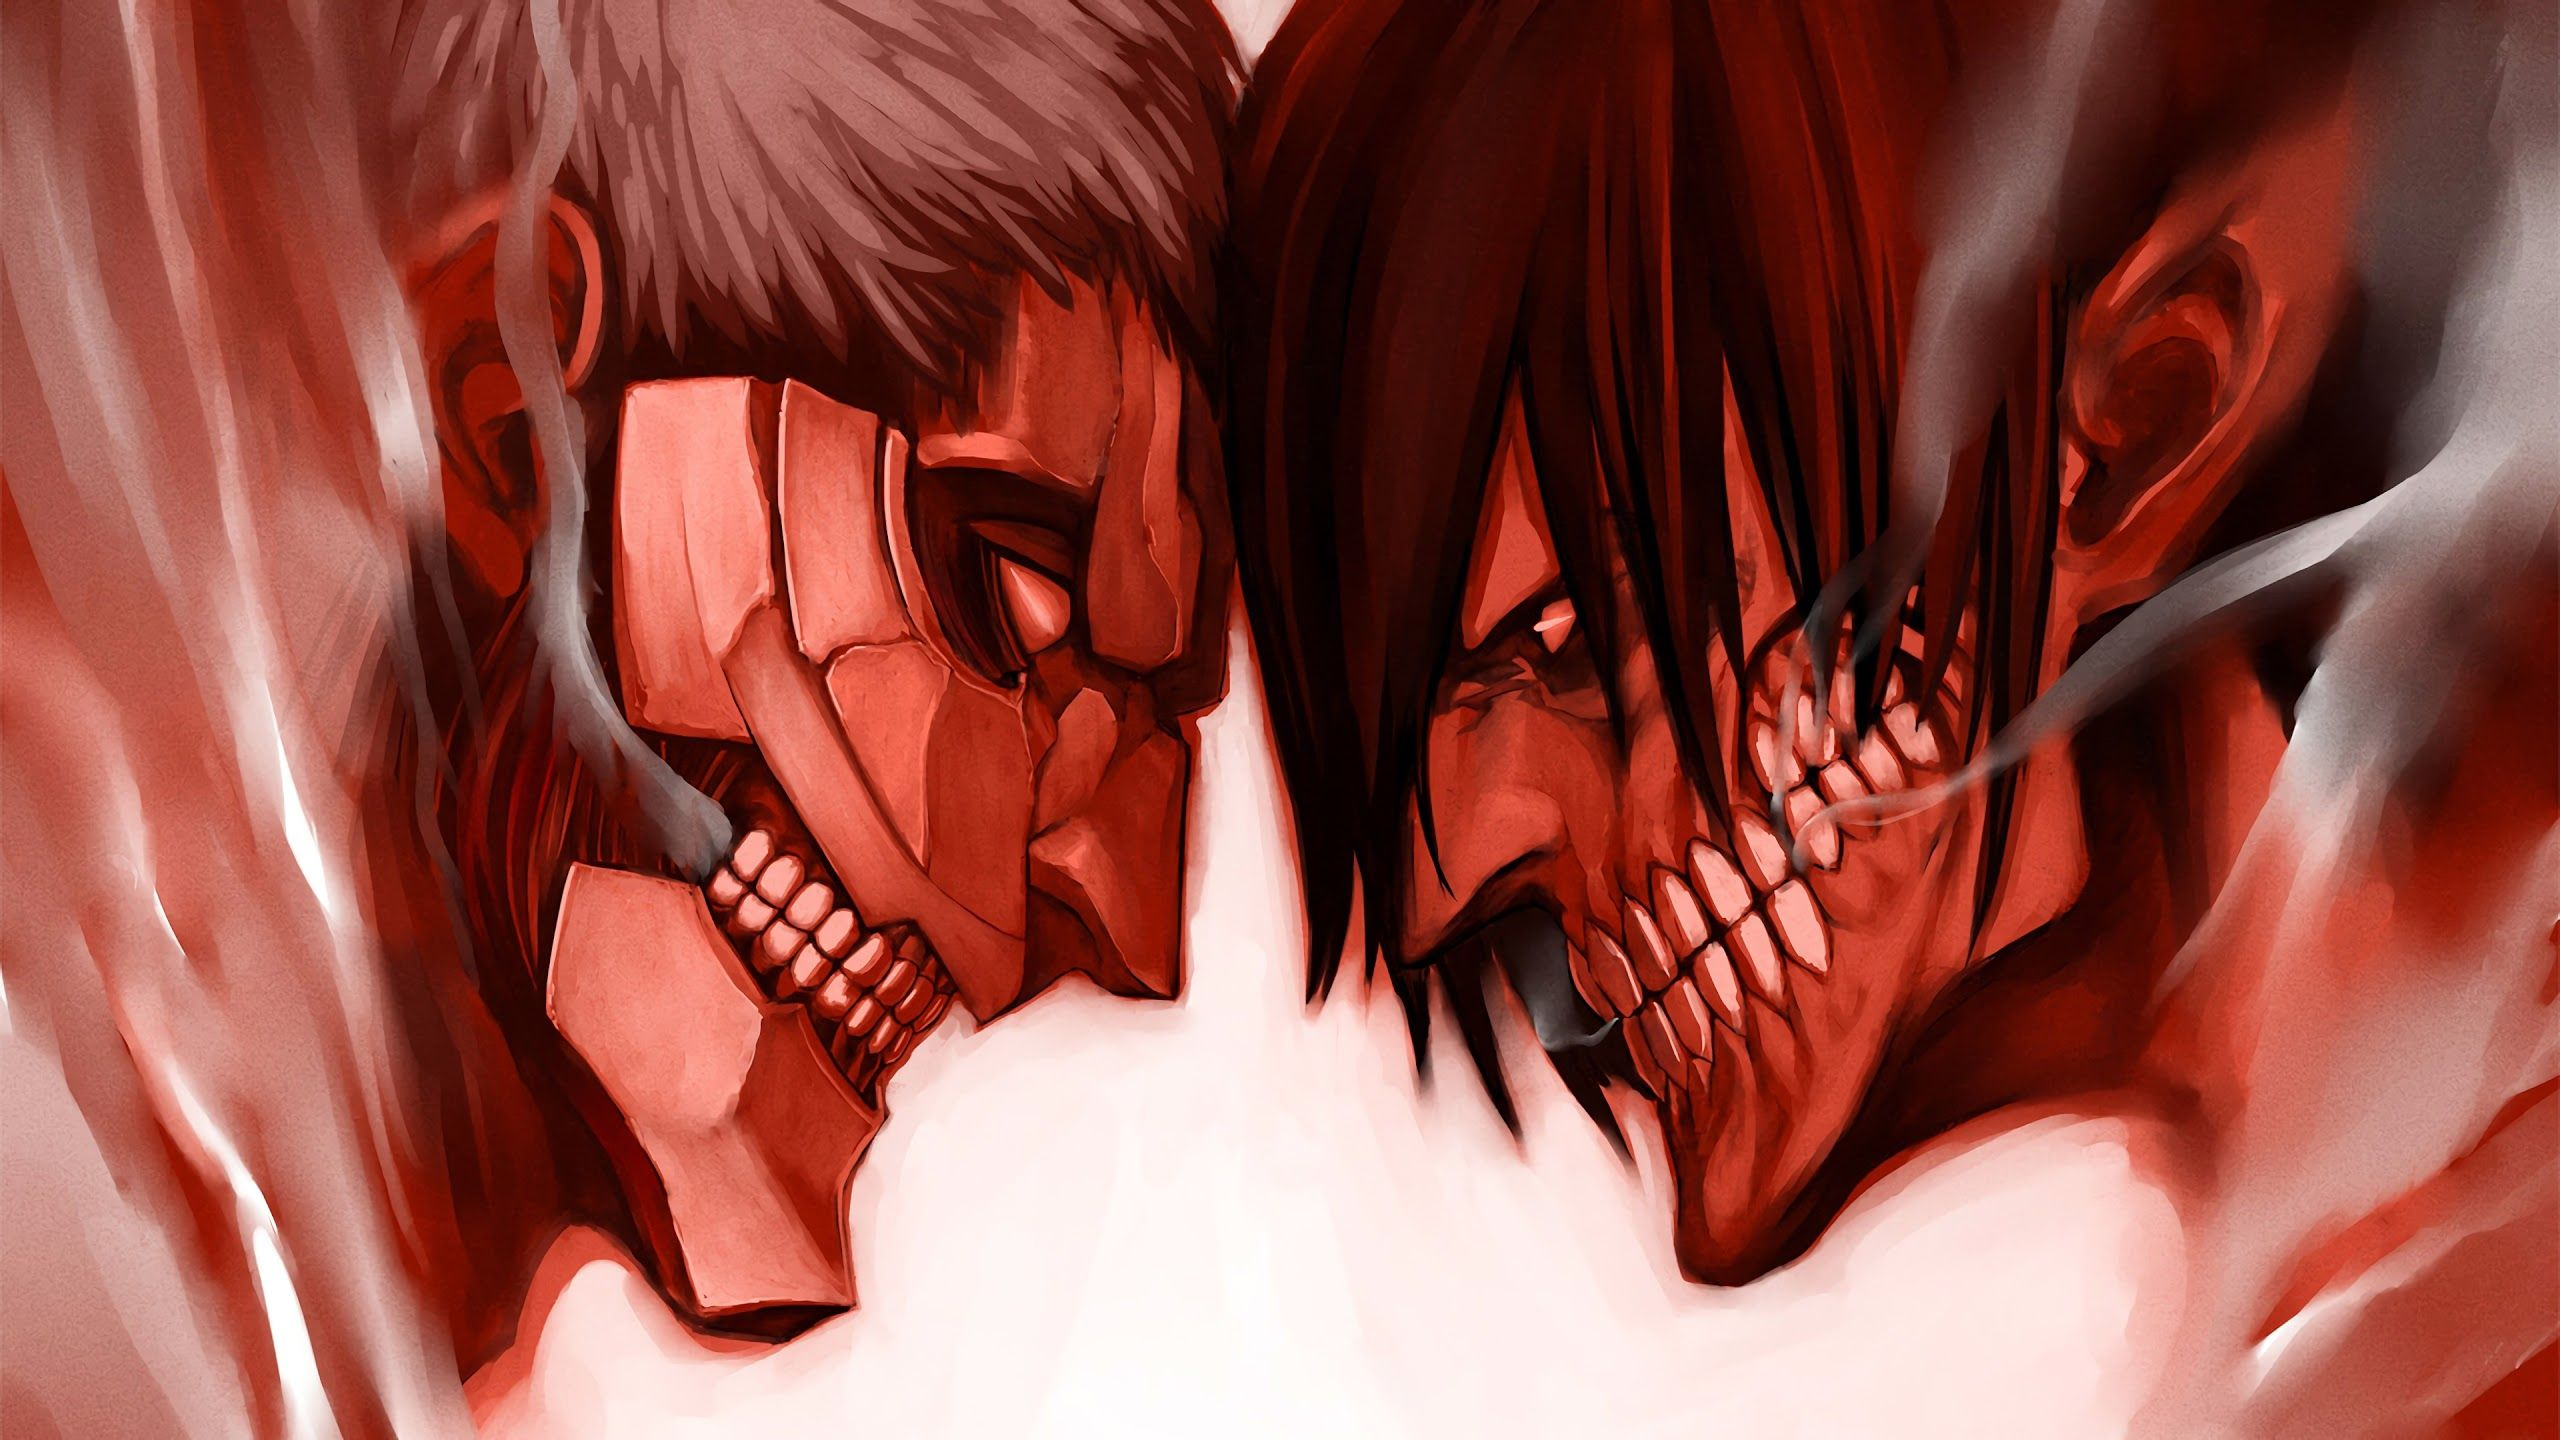 Armored Titan Wallpapers - Wallpaper Cave